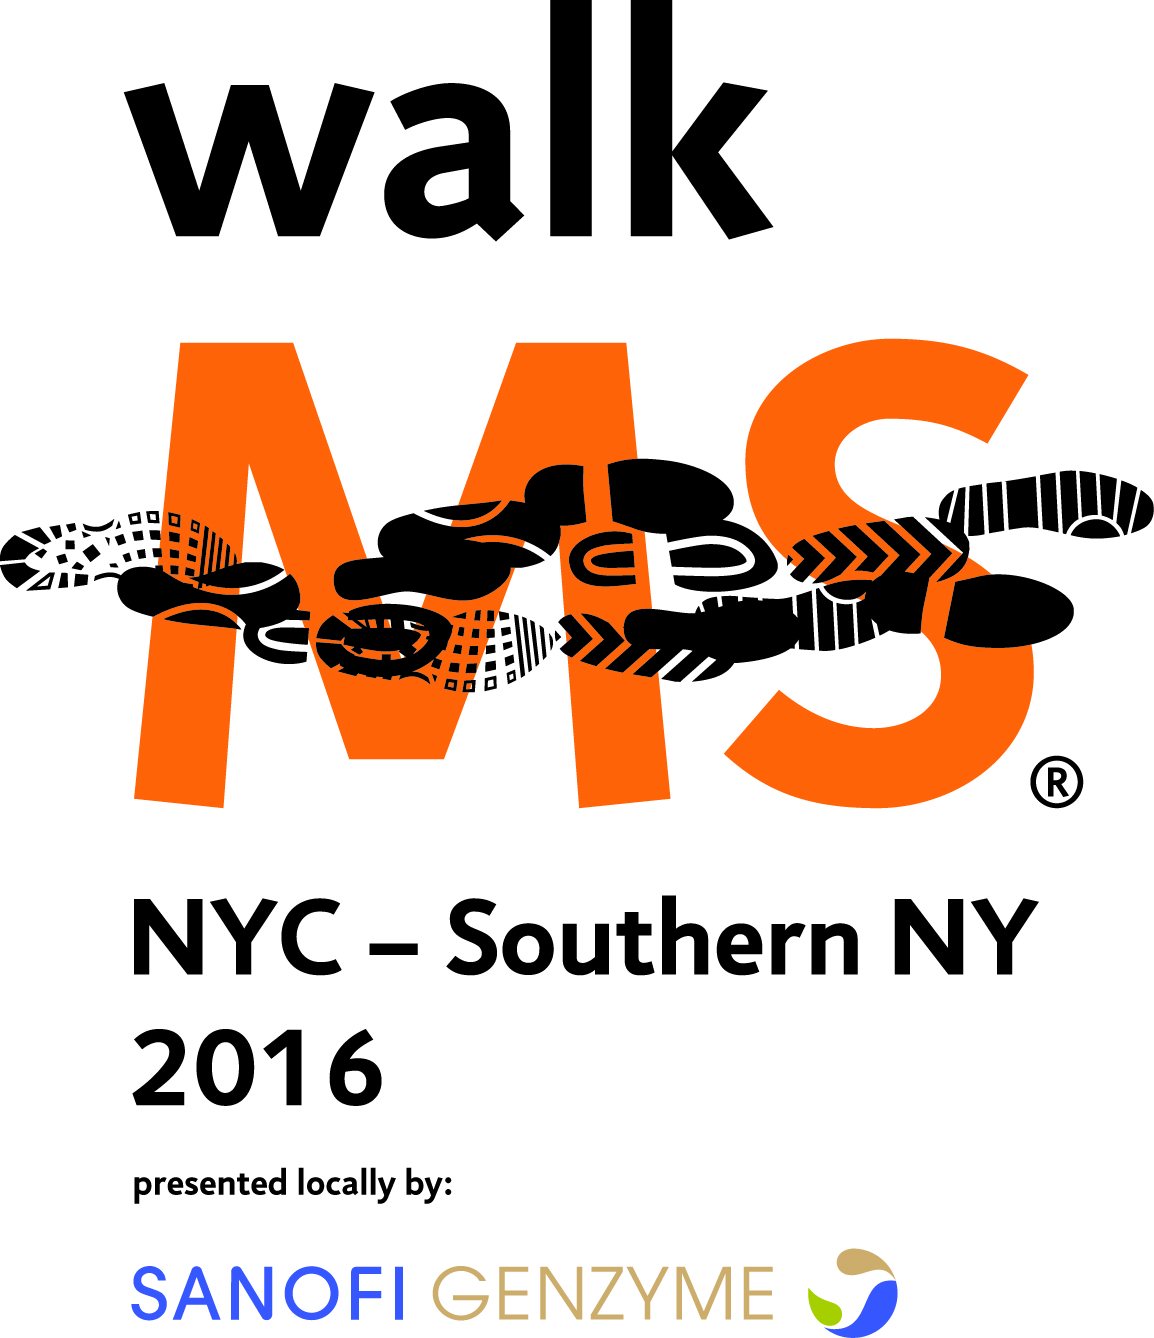 WalkMS_2016_NYC-SNY_2Color.jpg